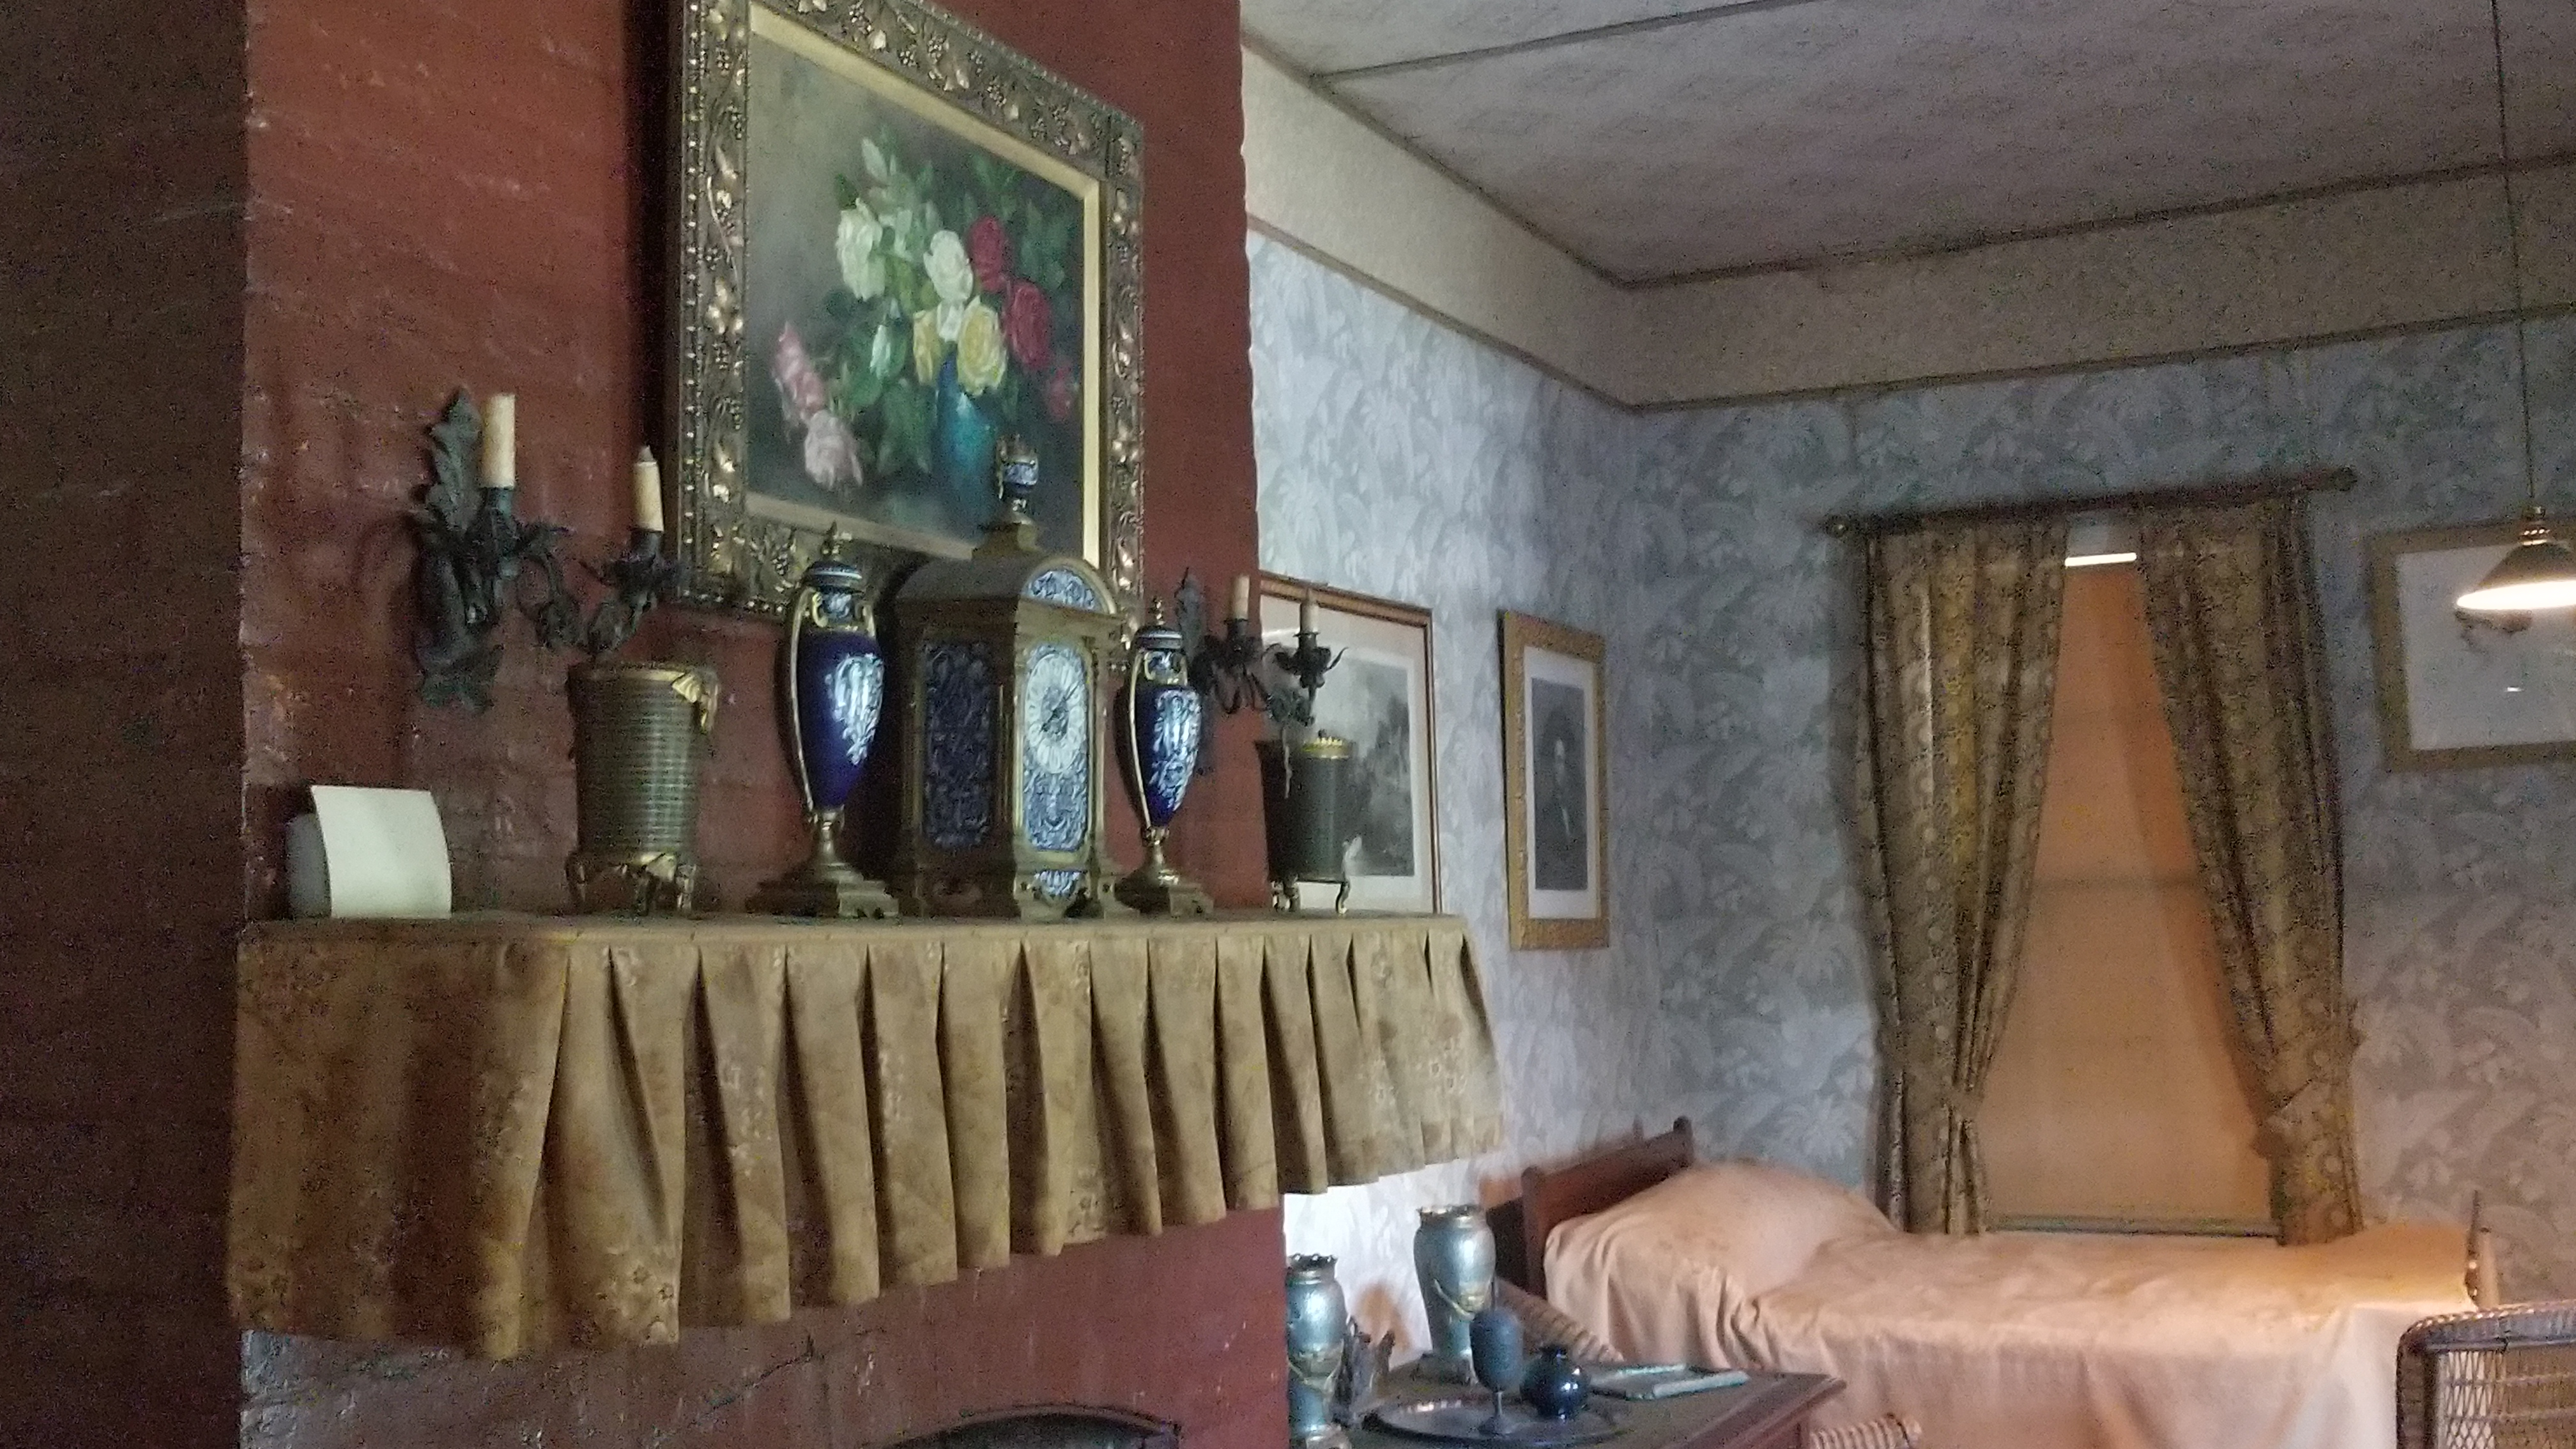 Grant's deathbed and clock